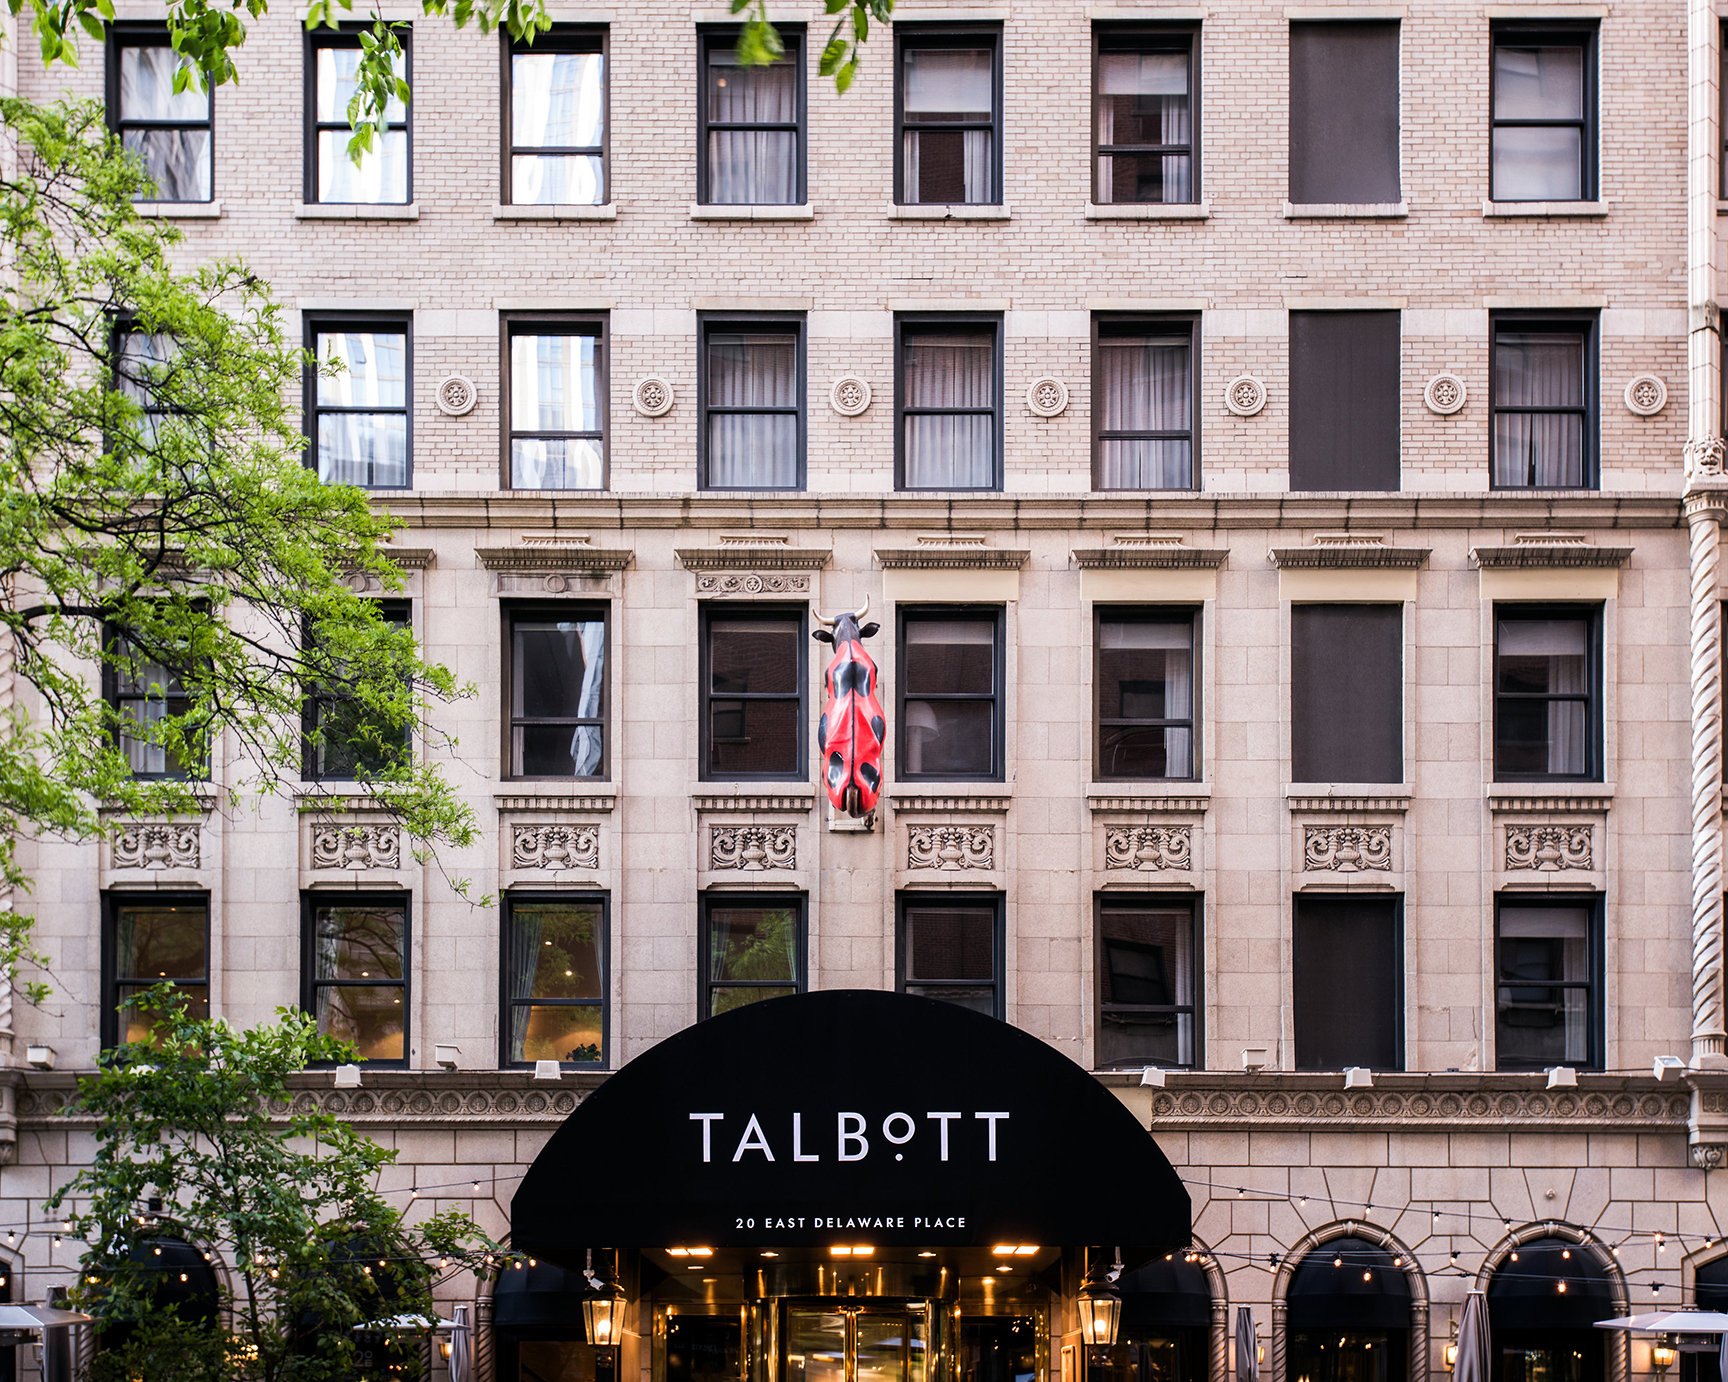 exterior photo of the Hotel Talbott entrance